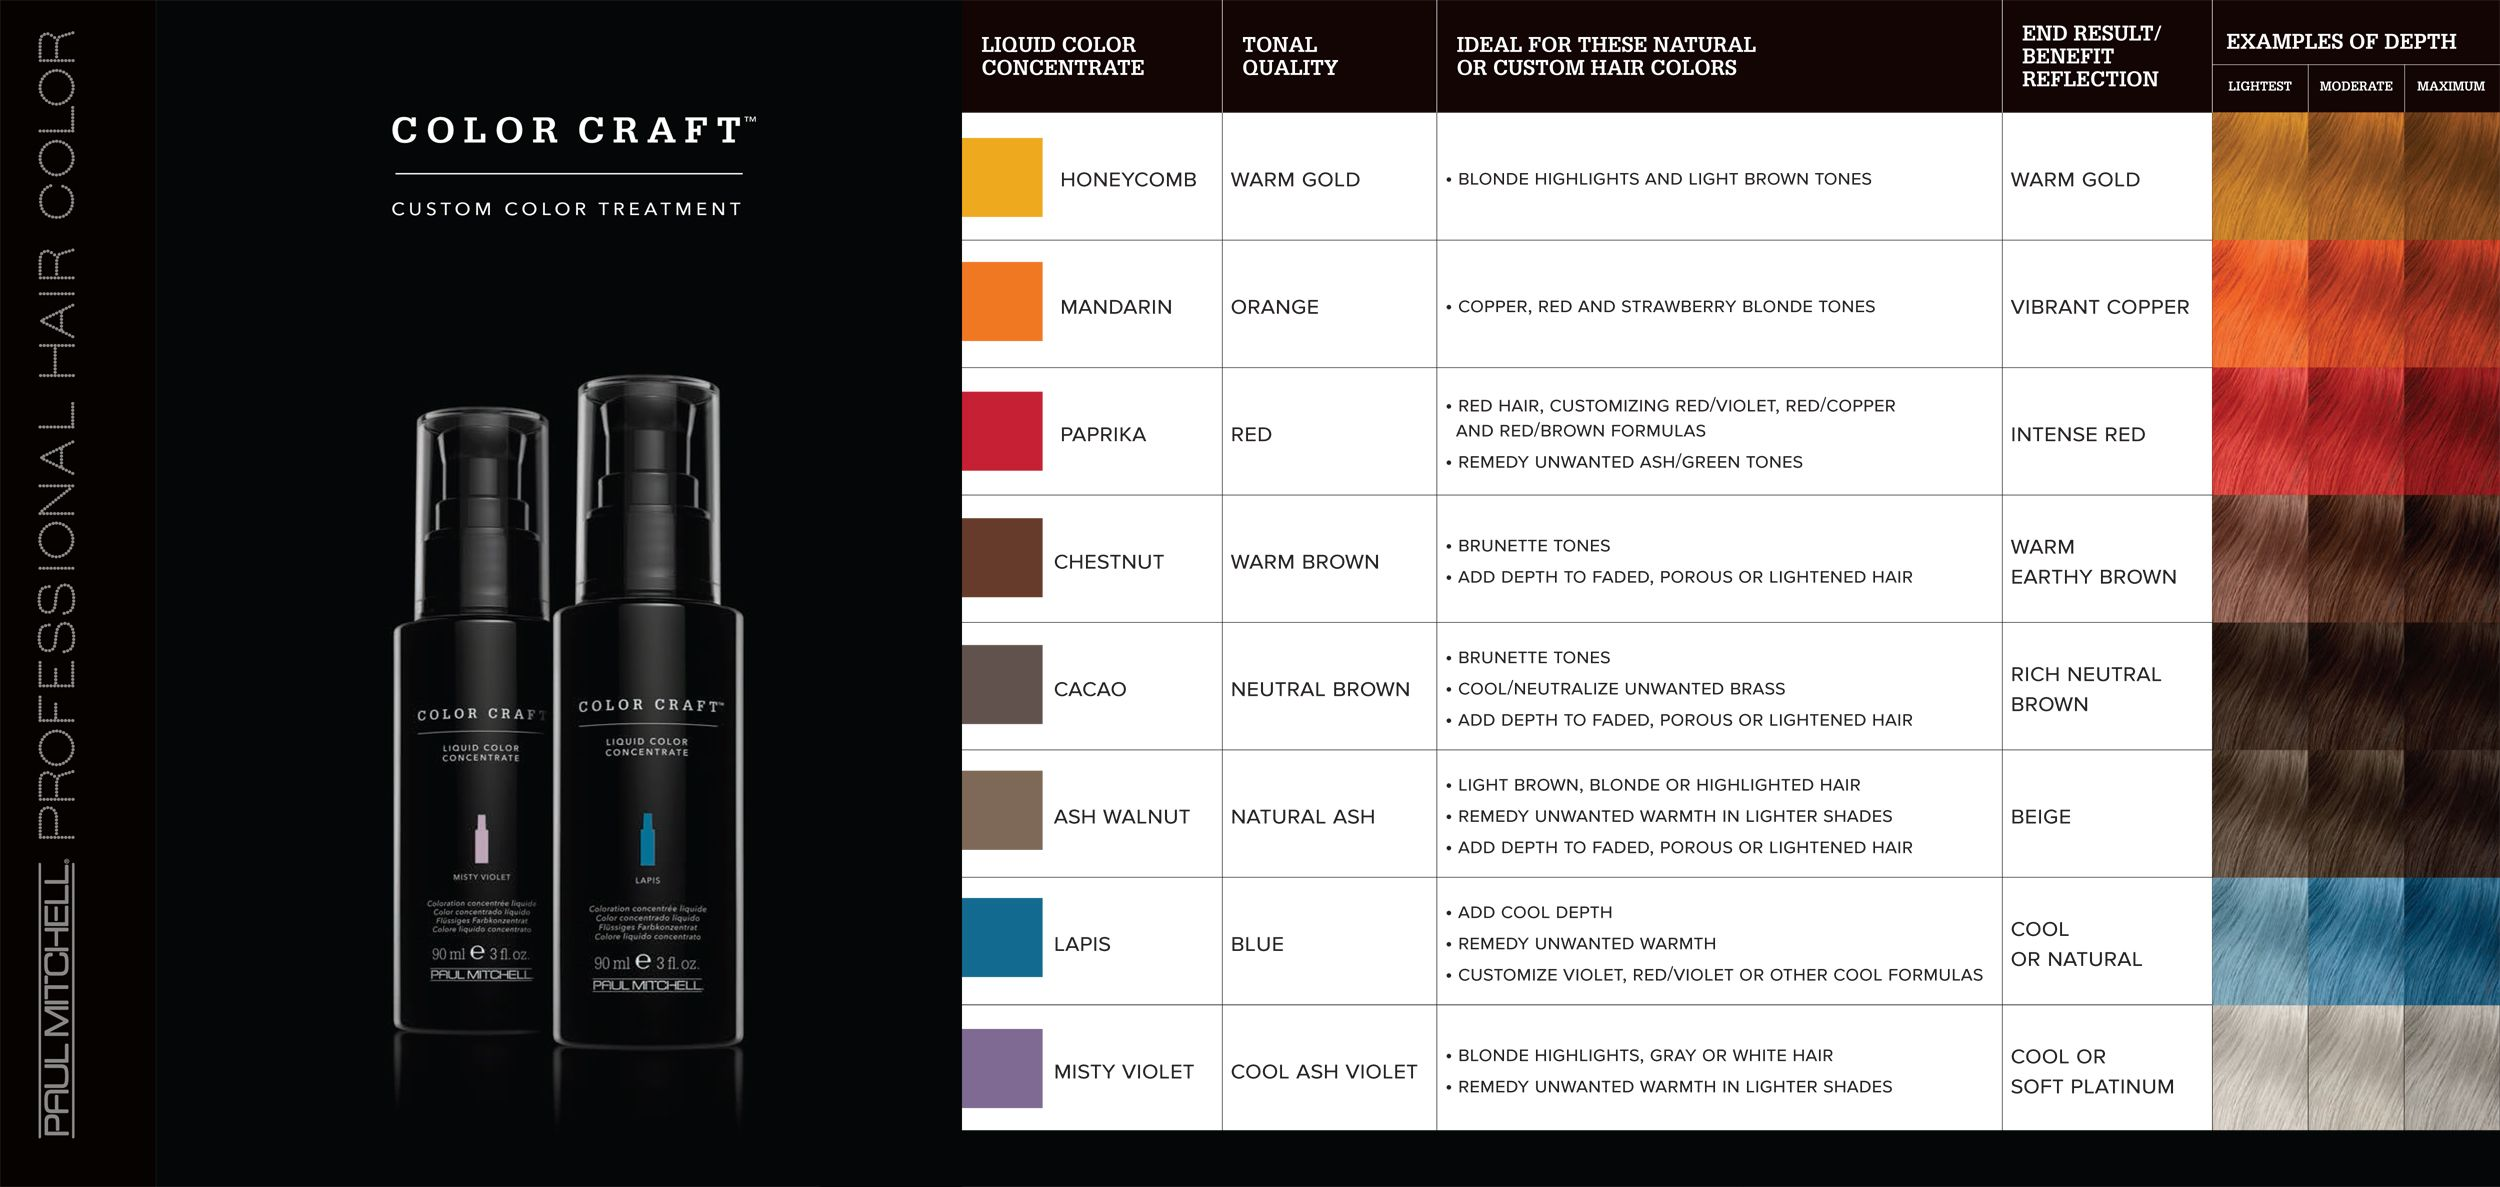 Paul Mitchell Color Craft Color Swatch